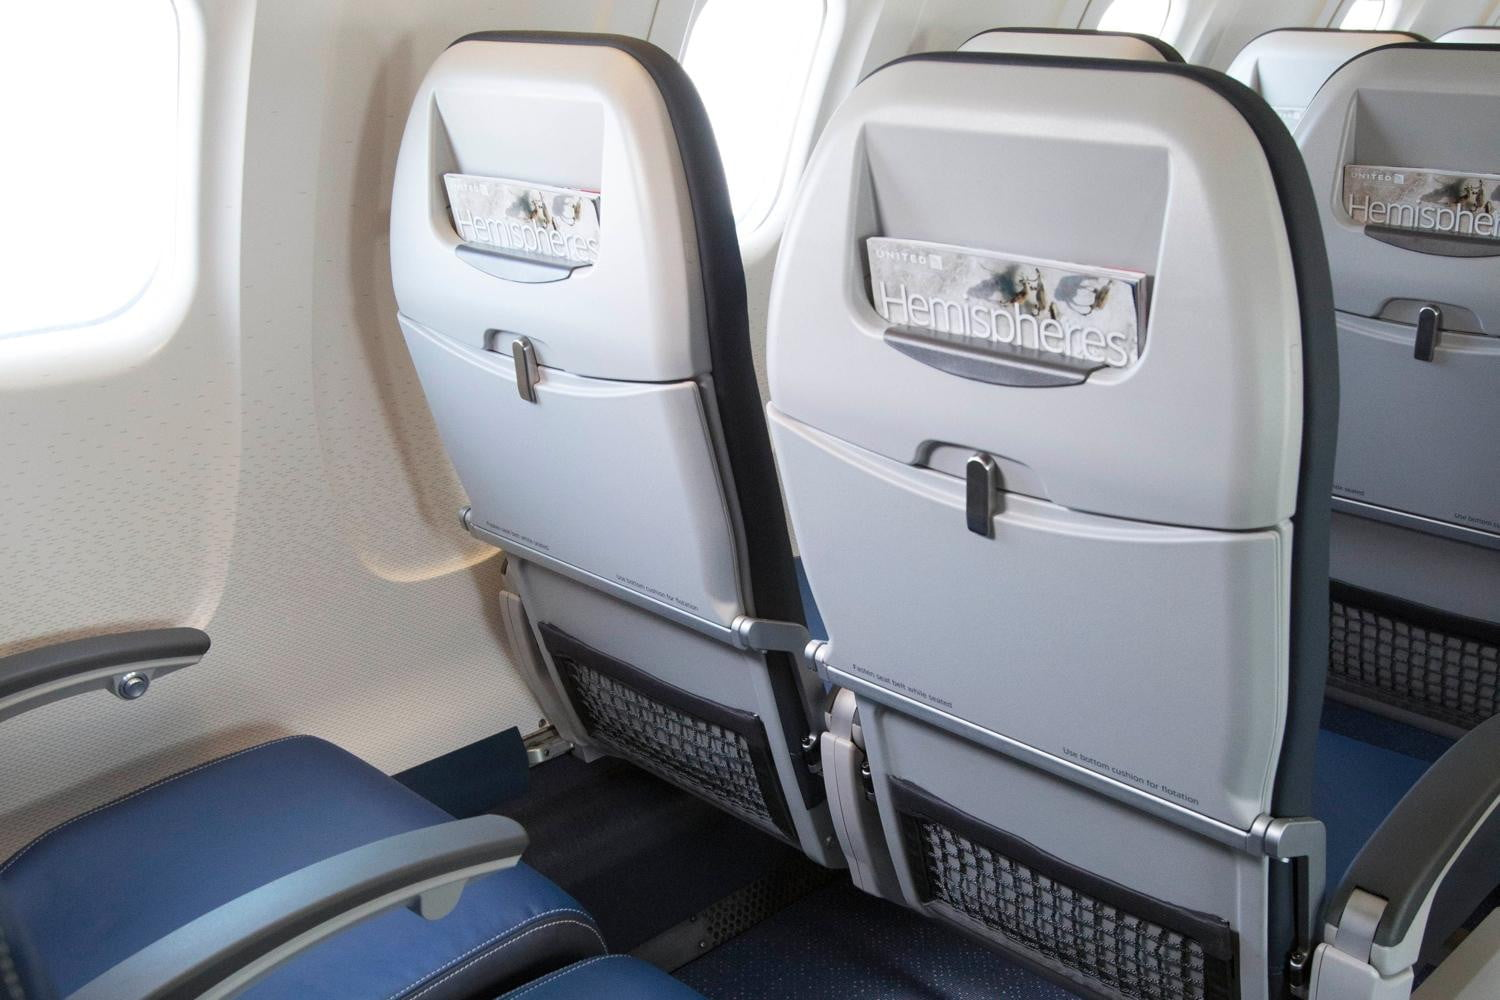 Wi-Fi and Video Streaming are Future of In-Flight Entertainment